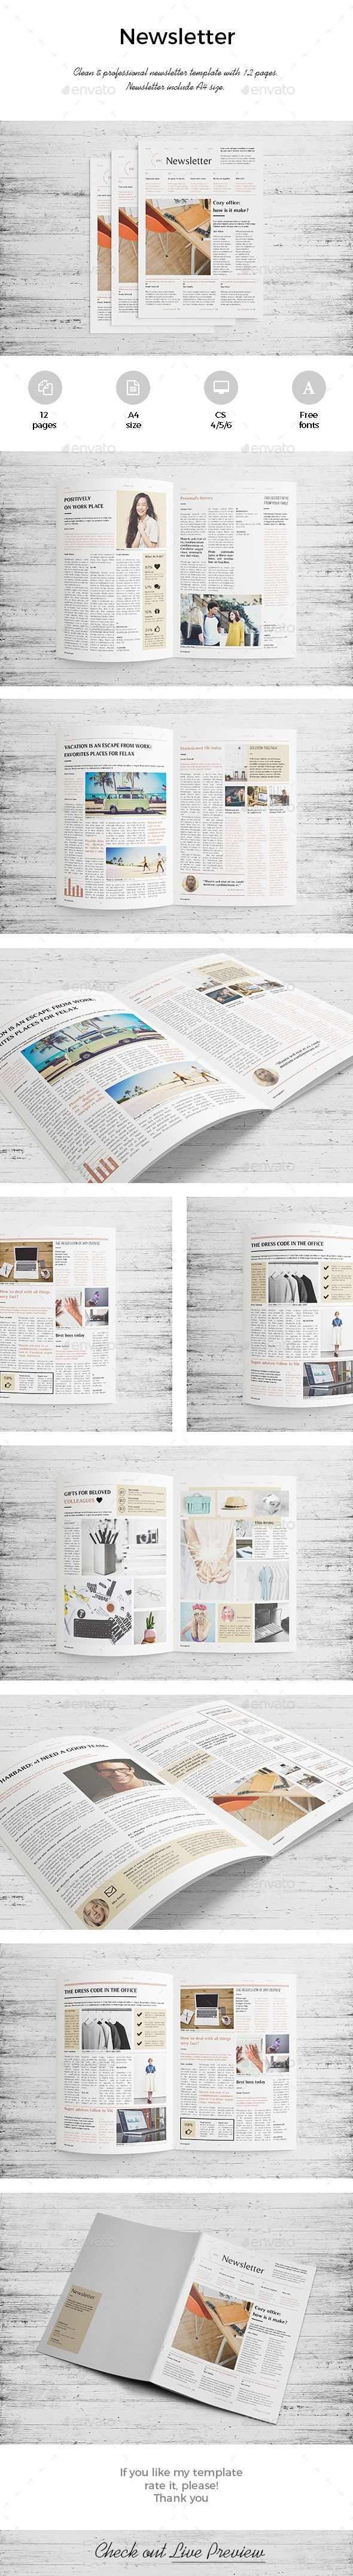 Newsletter Corporate 12 Pages - Newsletters Print Templates Download here : https://graphicriver.net/item/newsletter-corporate-12-pages/17722212?s_rank=50&ref=Al-fatih